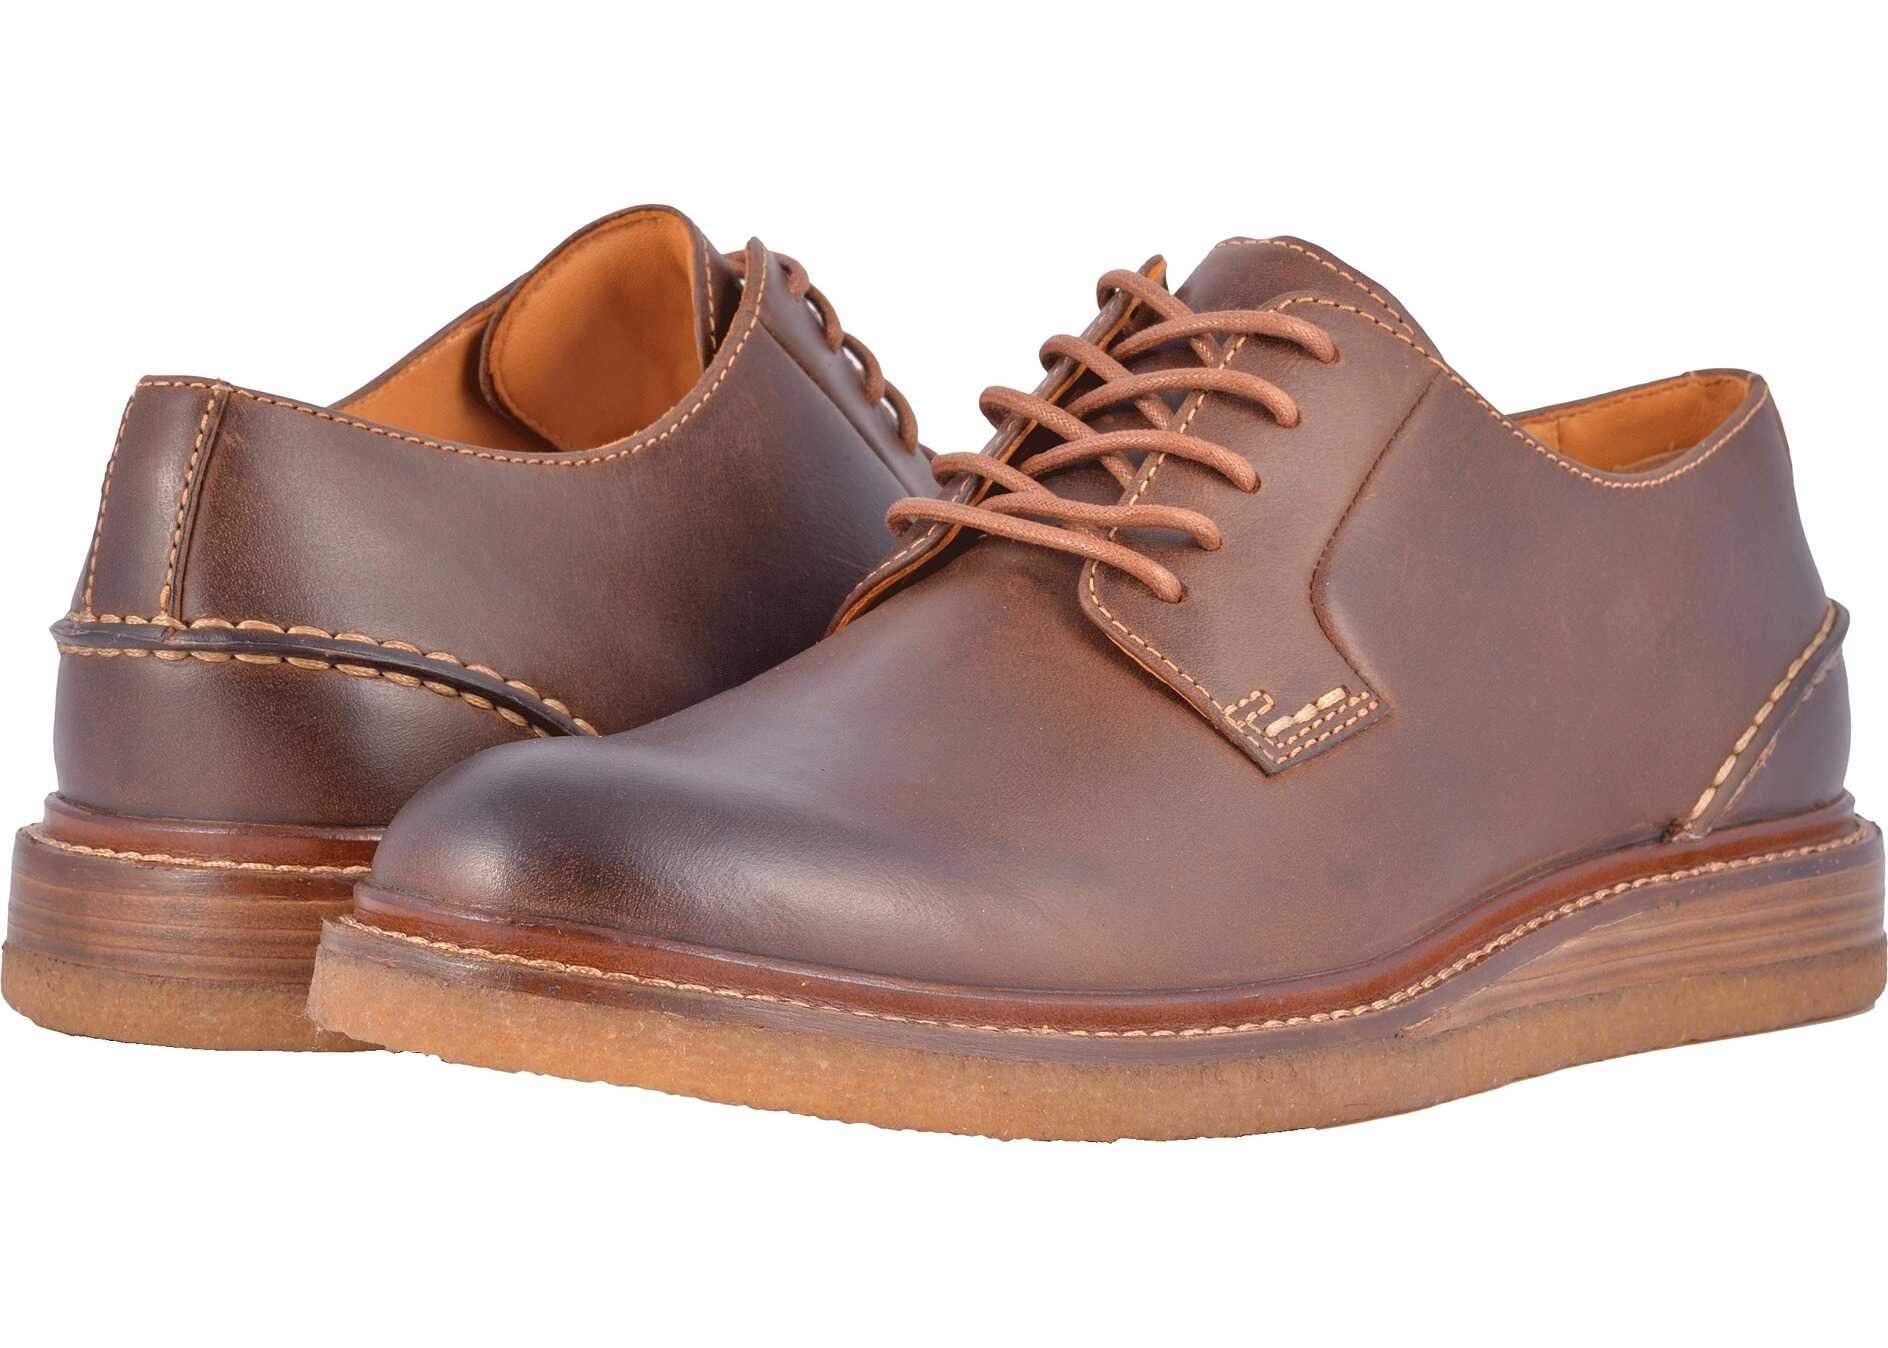 Sperry Top-Sider Gold Crepe Oxford Brown